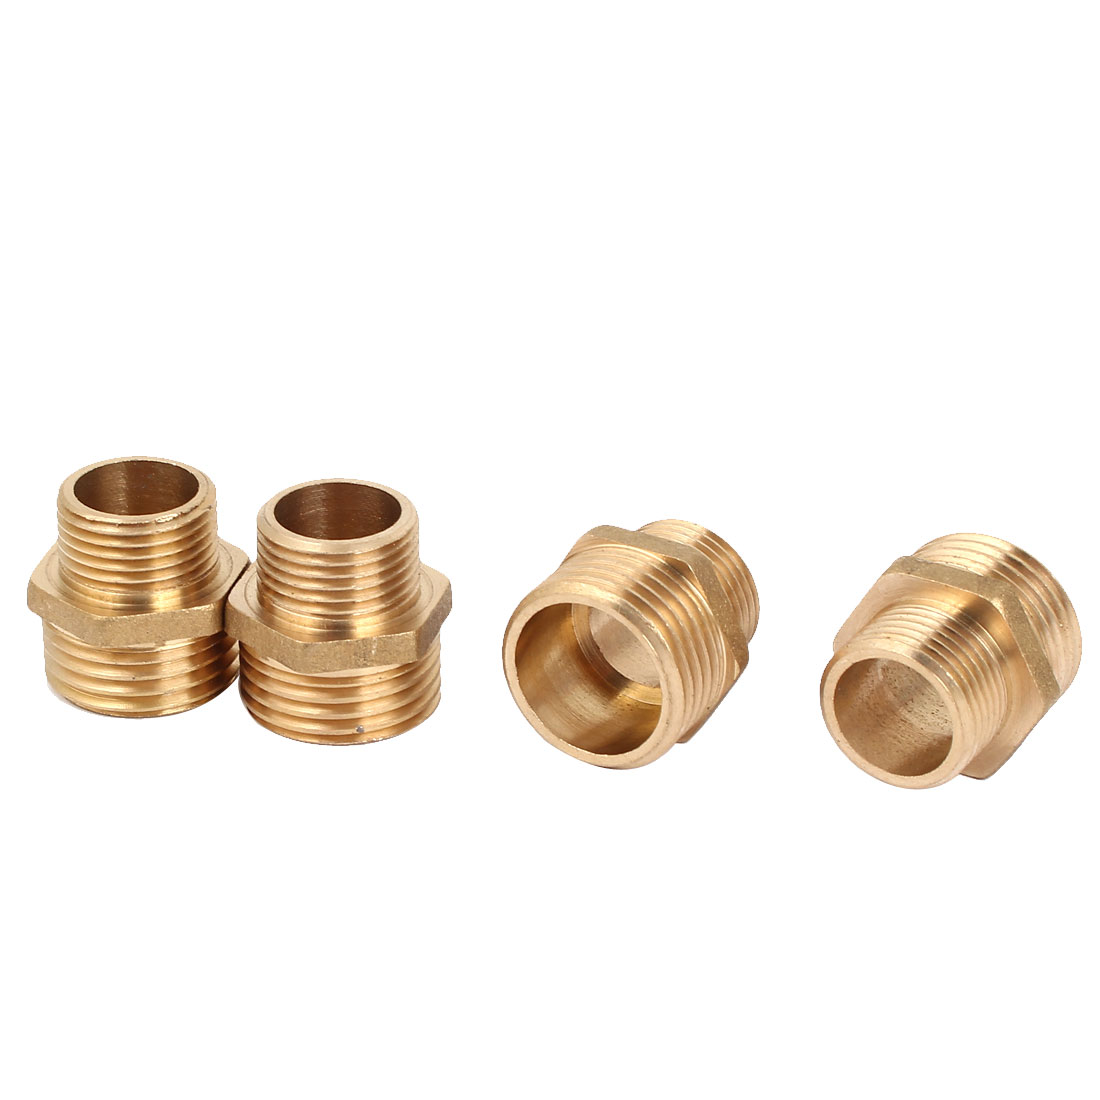 4Pcs 1/2BSP to 3/8SP Male Thread Brass Pipe Hex Nipple Fitting Quick Adapter